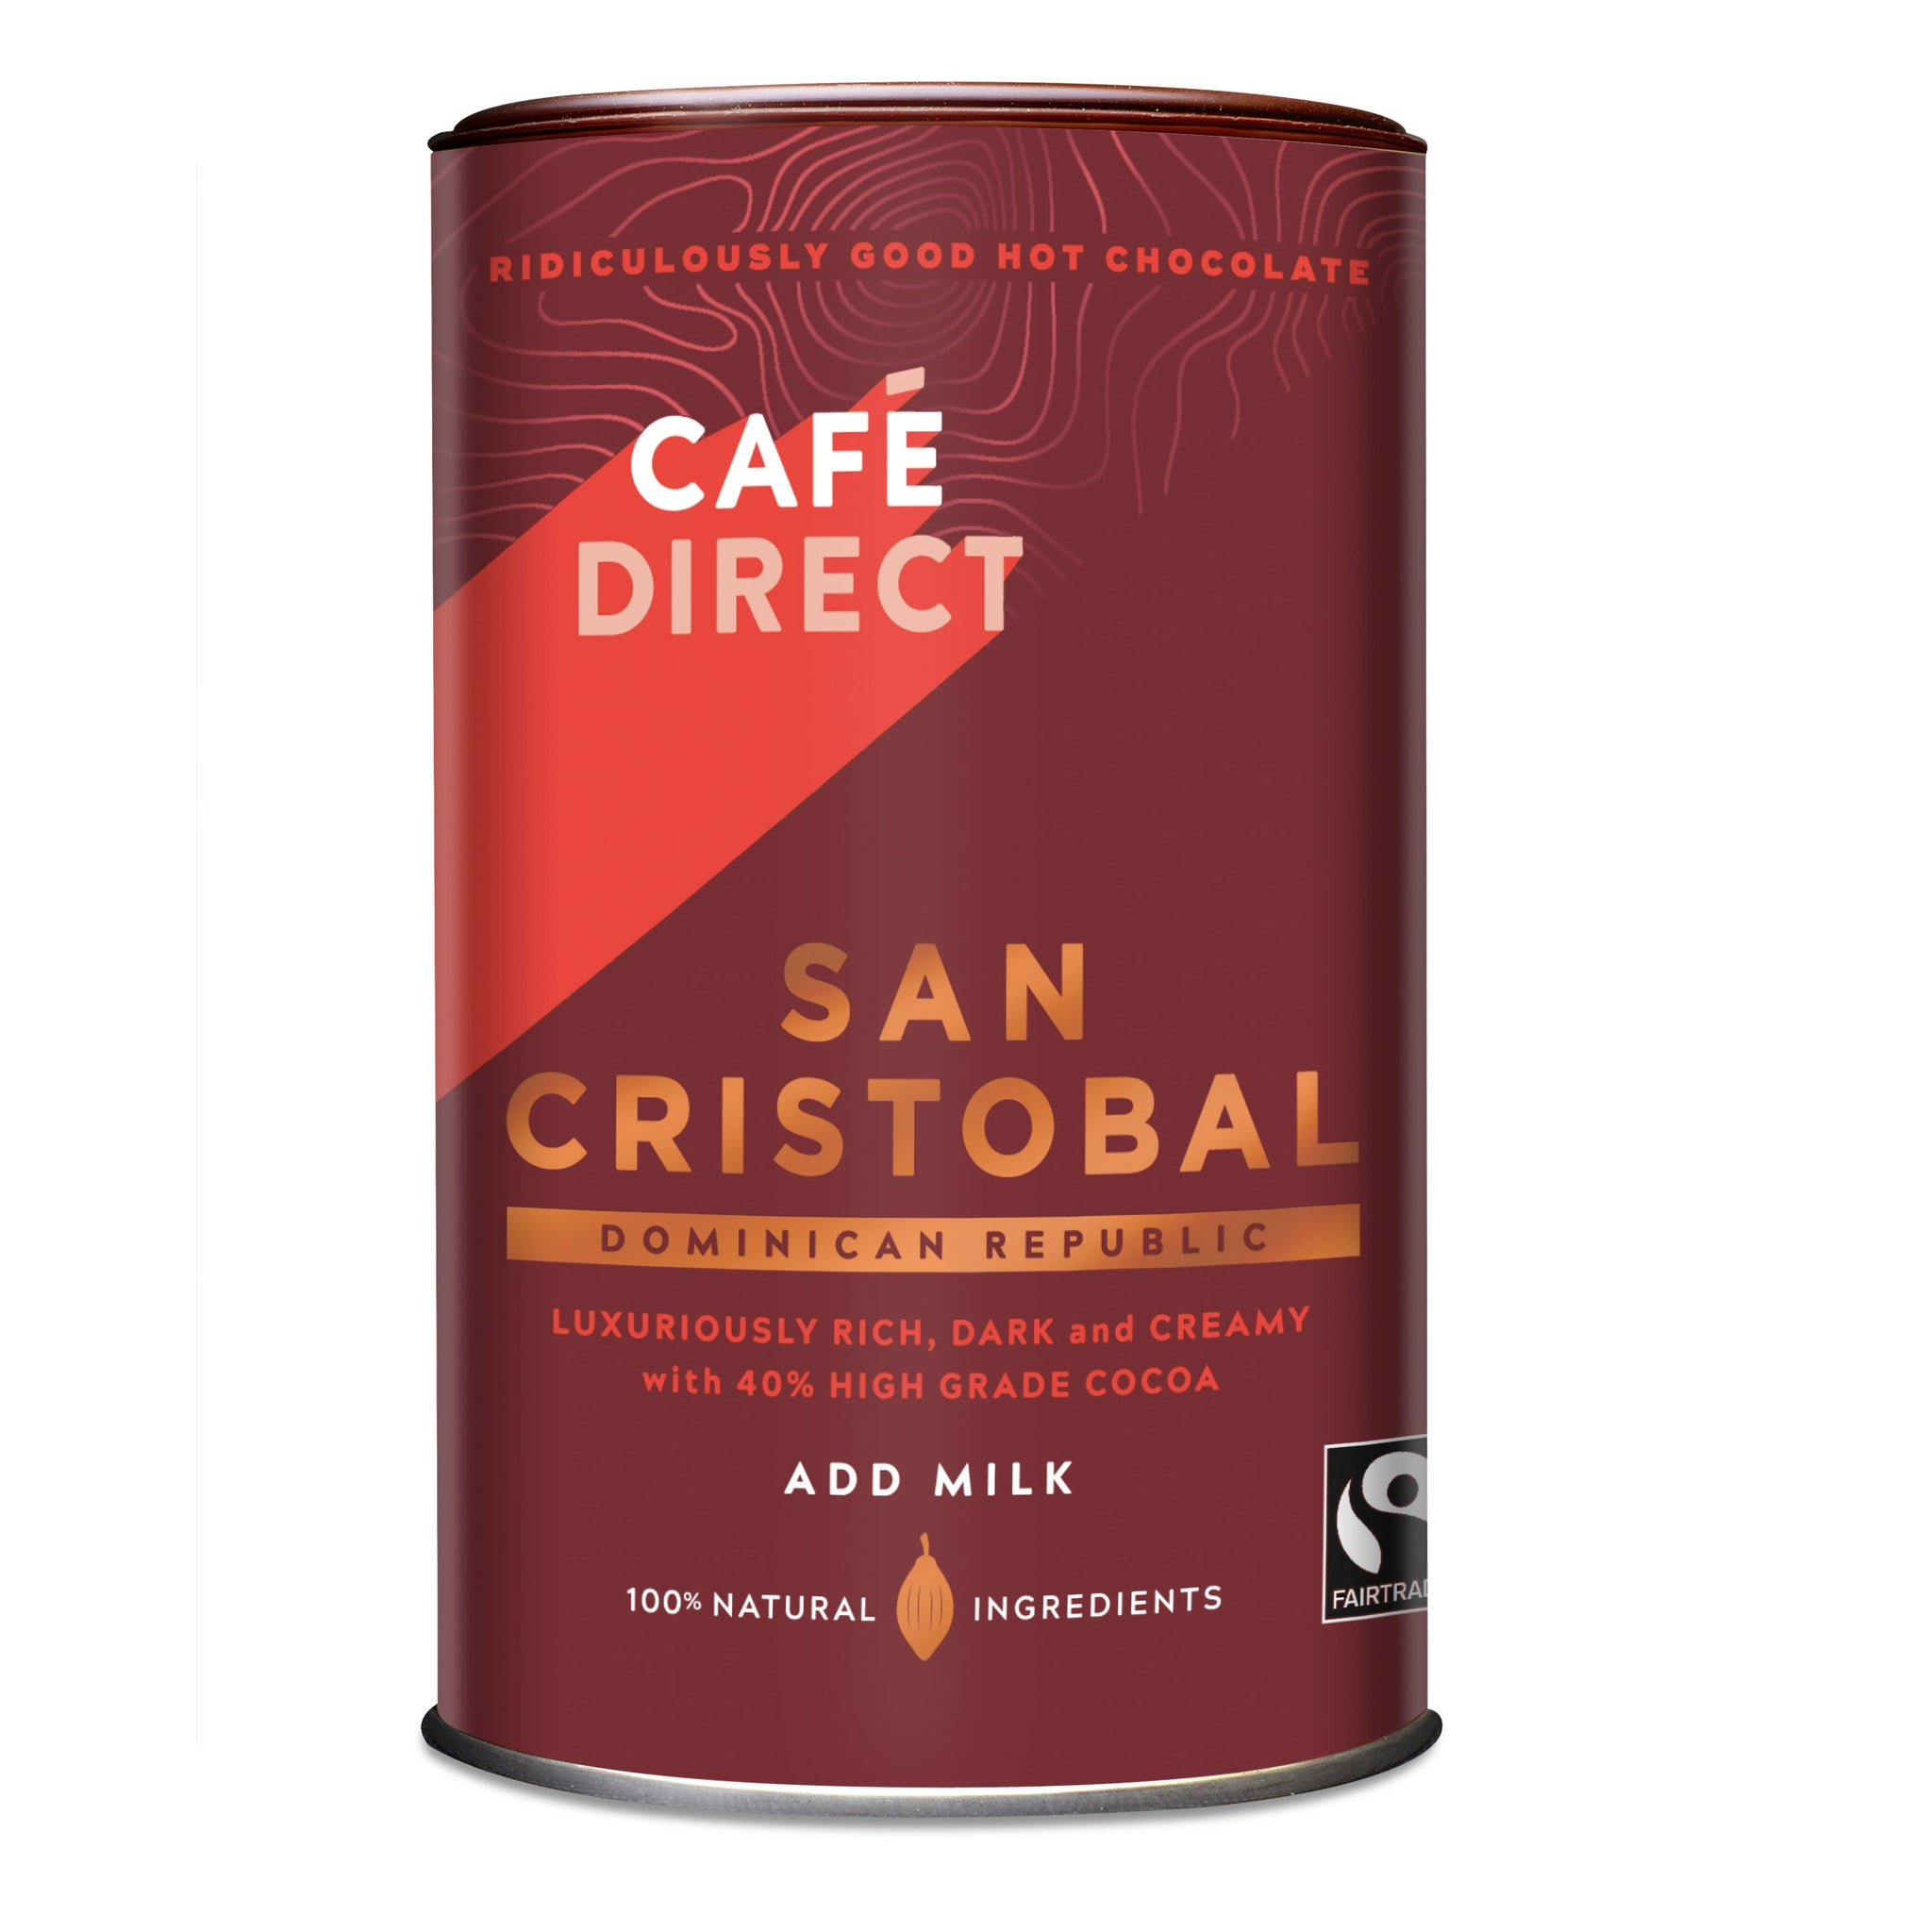 Cafe Direct Fairtrade San Cristobal Hot Chocolate (6x250g)